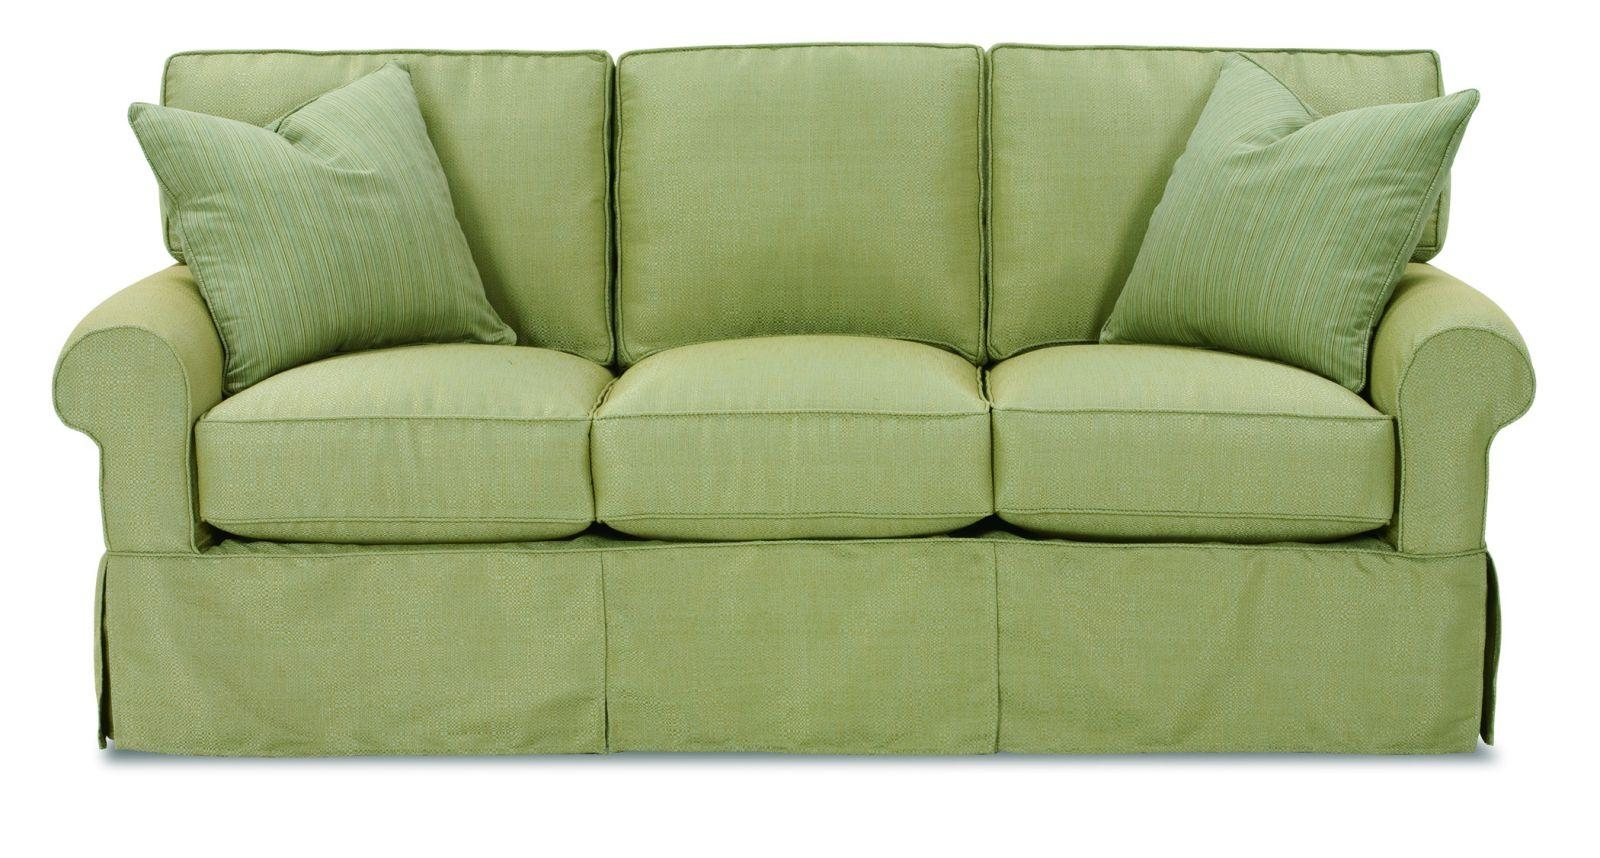 Furniture: Couch Slip Cover Will Stand Up To The Rigors Of In Sleeper Sofa Slipcovers (Image 6 of 20)